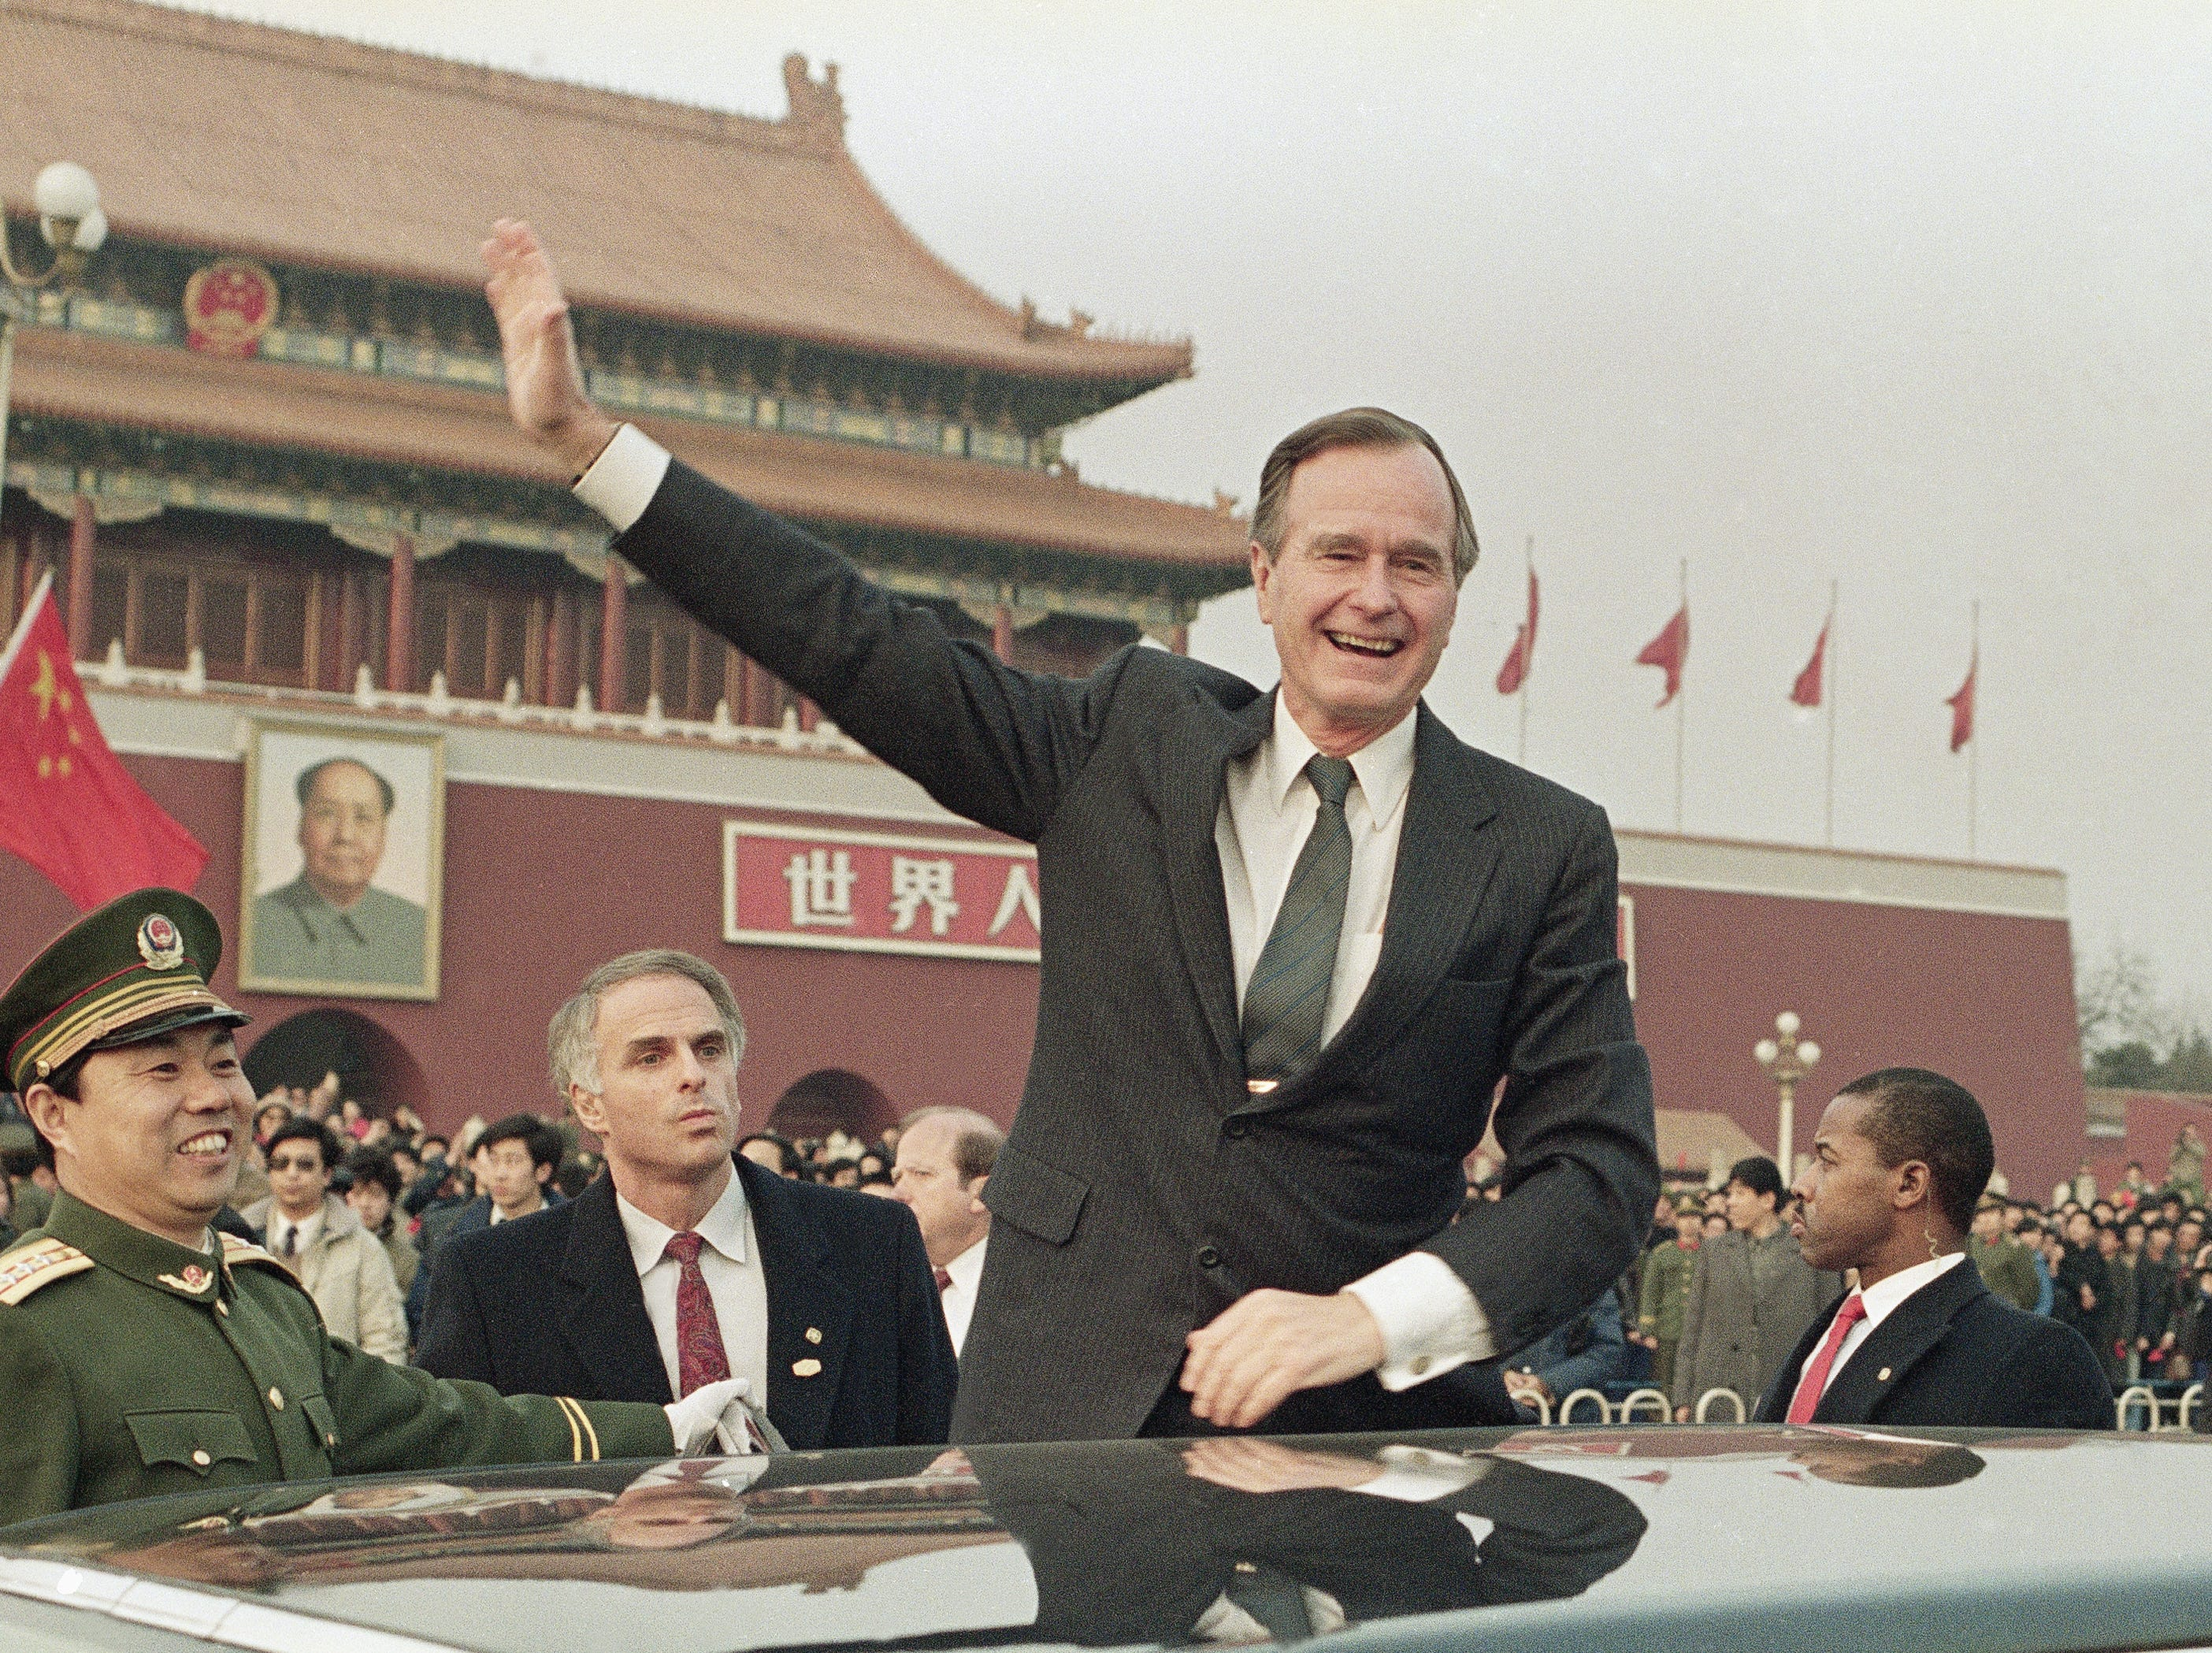 FILE - In this Feb. 25, 1989, file photo President George H.W. Bush stands on his car and waves to the crowds in Tiananman Square in Beijing. On the wall in the background is a huge portrait of Mao Zidong at the entrance to the Forbidden City. A president's first 100 days can be a tire-squealing roar from the starting line, a triumph of style over substance, a taste of what's to come or an ambitious plan of action that gets rudely interrupted by world events. (AP Photo/Doug Mills, File)